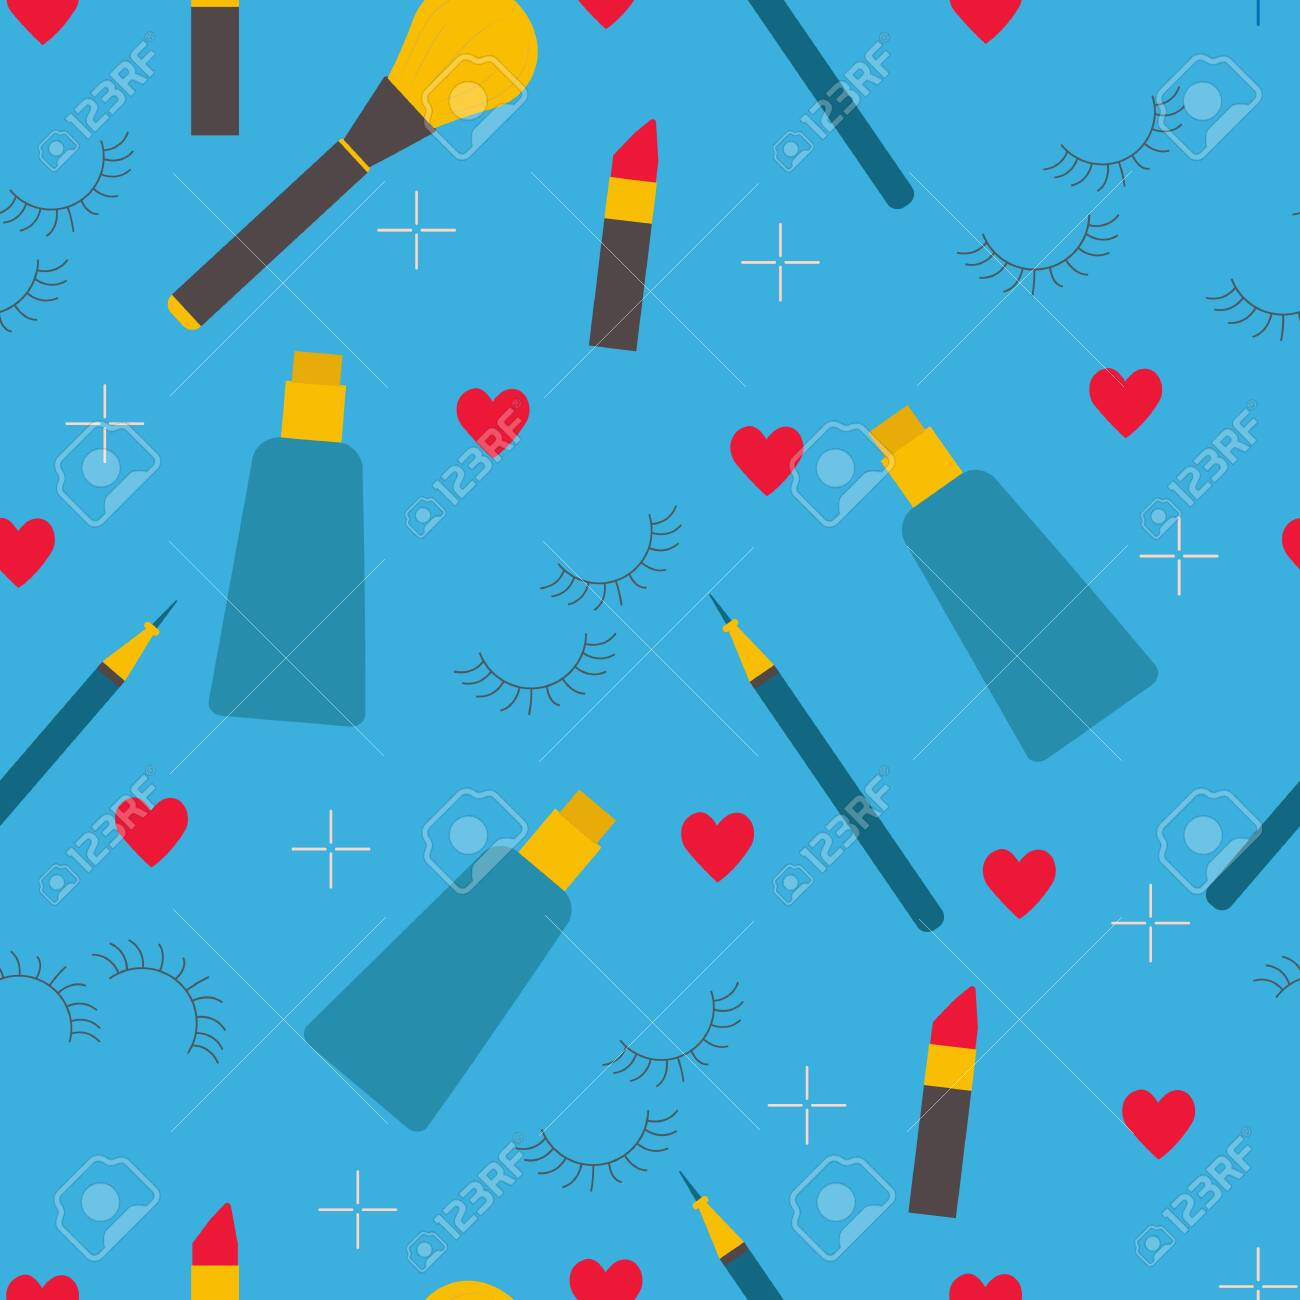 Makeup And Skin Care Products On Blue Background Vector Seamless Royalty Free Cliparts Vectors And Stock Illustration Image 148899882